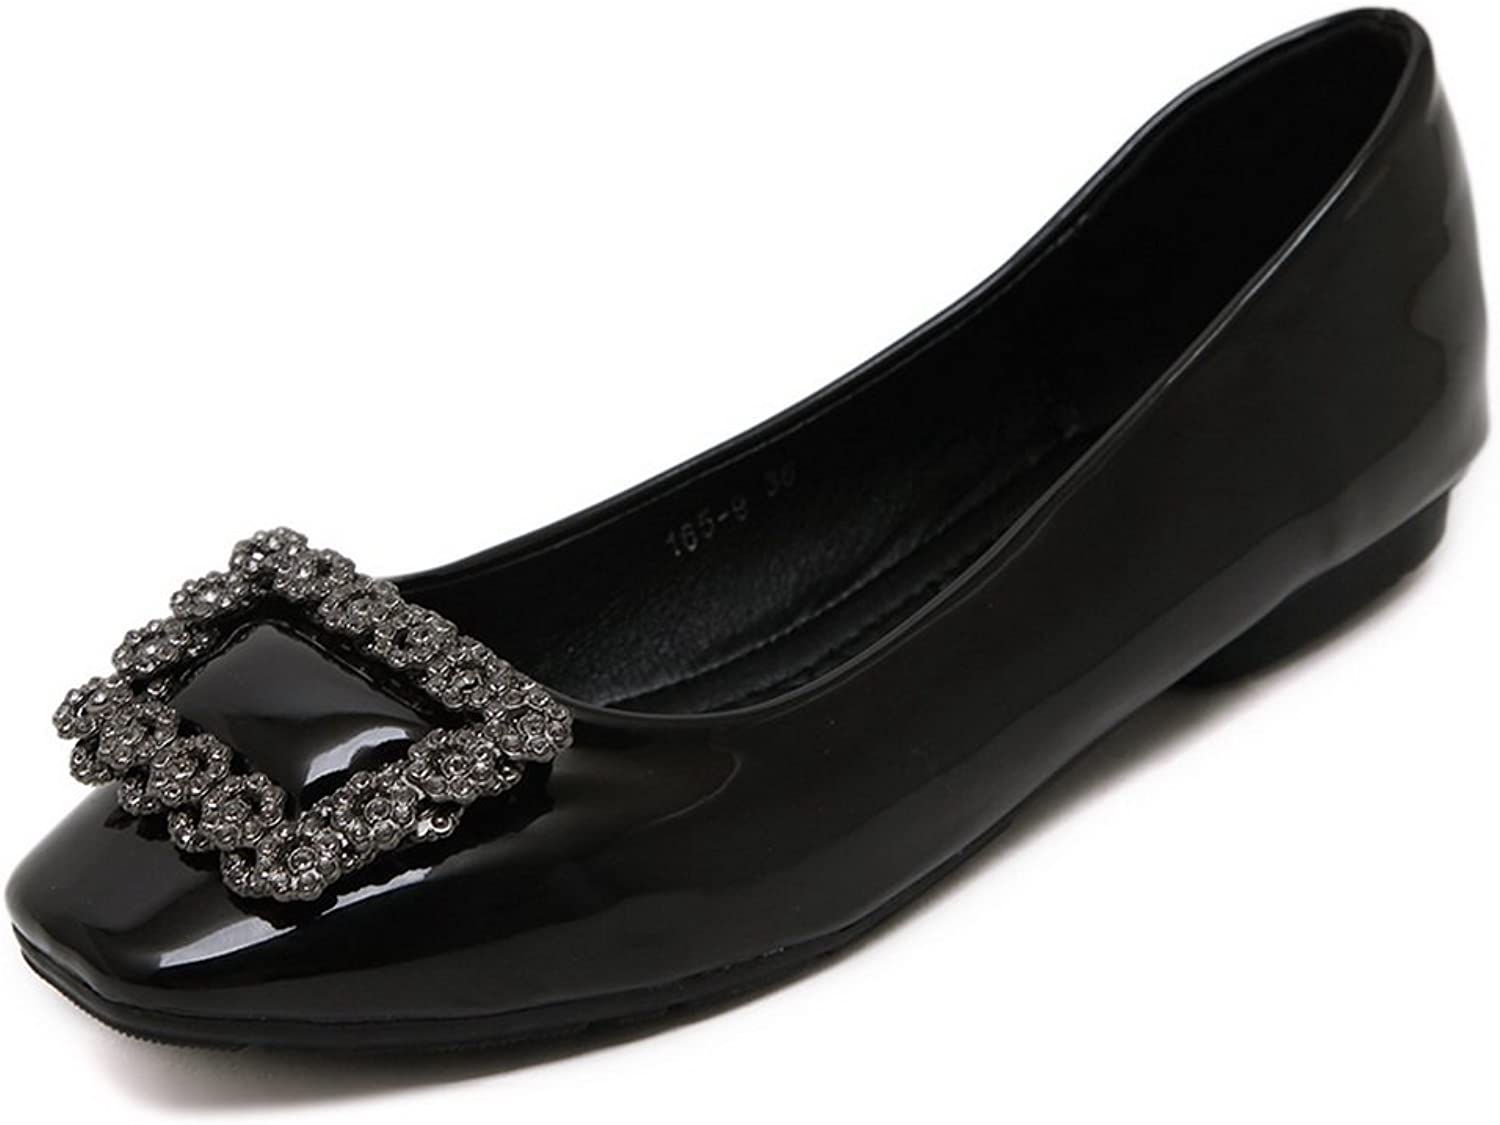 AdeeSu Womens Rhinestones Square-Toe Low-Cut Uppers Urethane Flats shoes